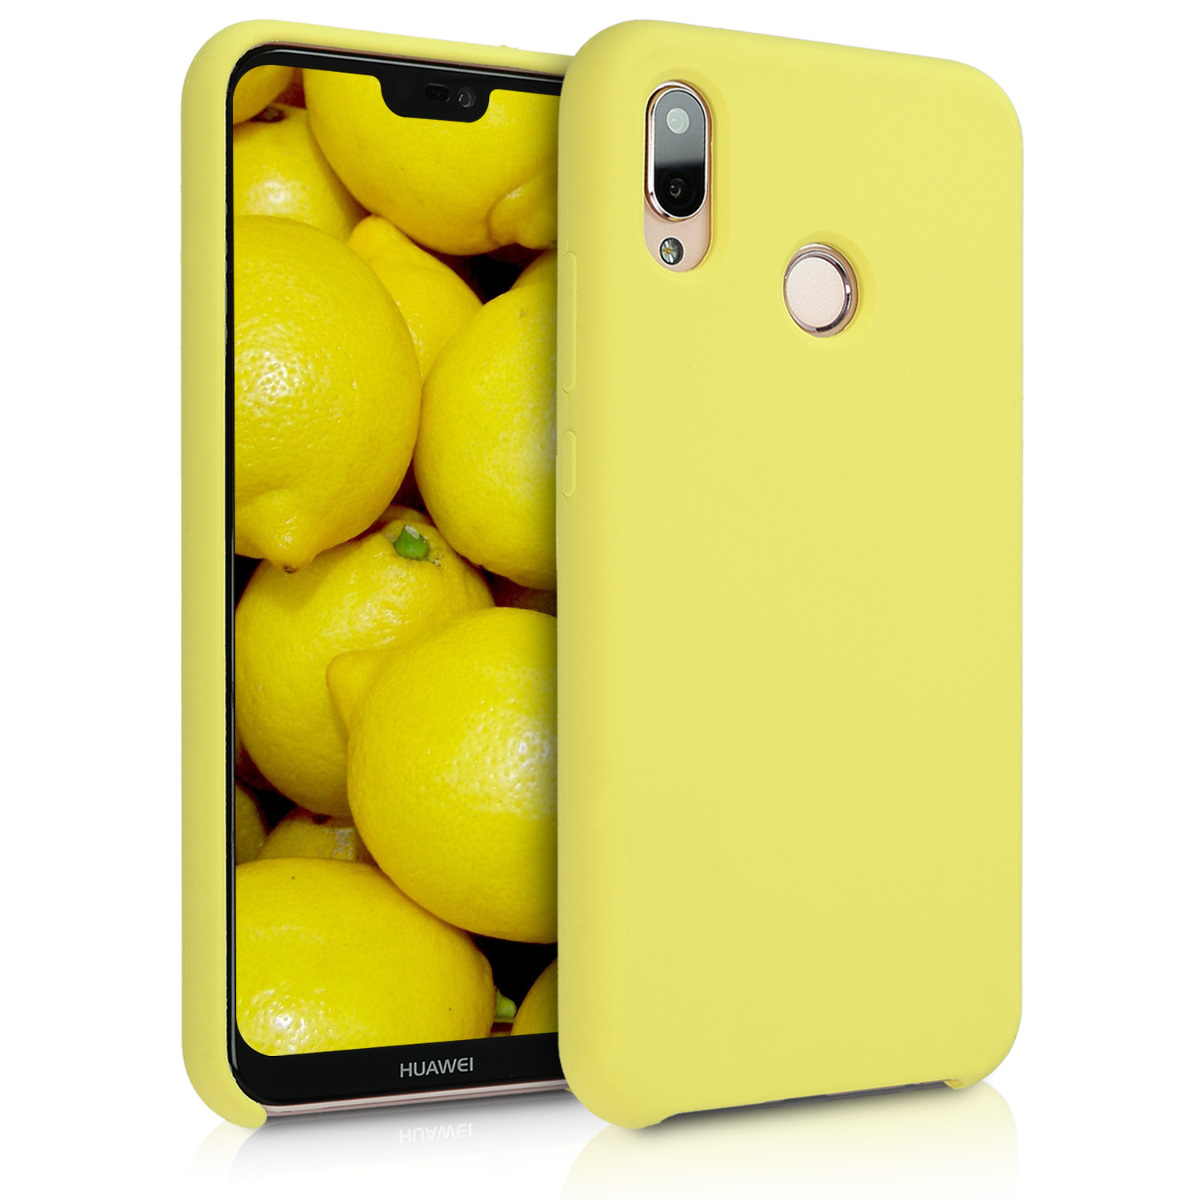 KW TPU Θήκη Σιλικόνης  Huawei P20 Lite - Soft Flexible Rubber Protective Cover - Pastel Yellow (45687.30)